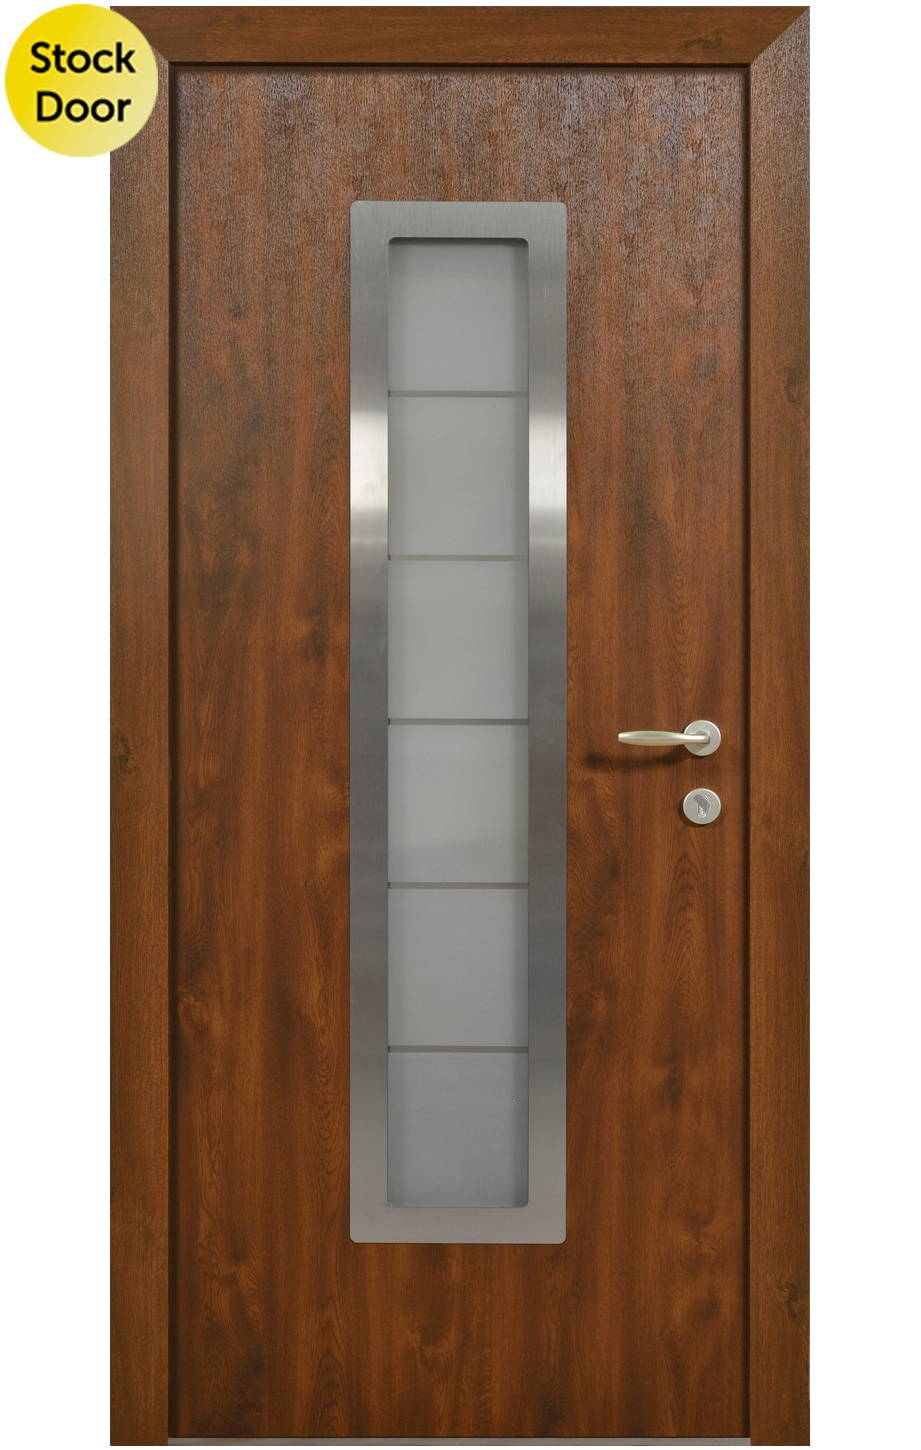 North entry door  sc 1 st  The Doors Depot & Buy North front door at a bargain price from Novo Porte at ...